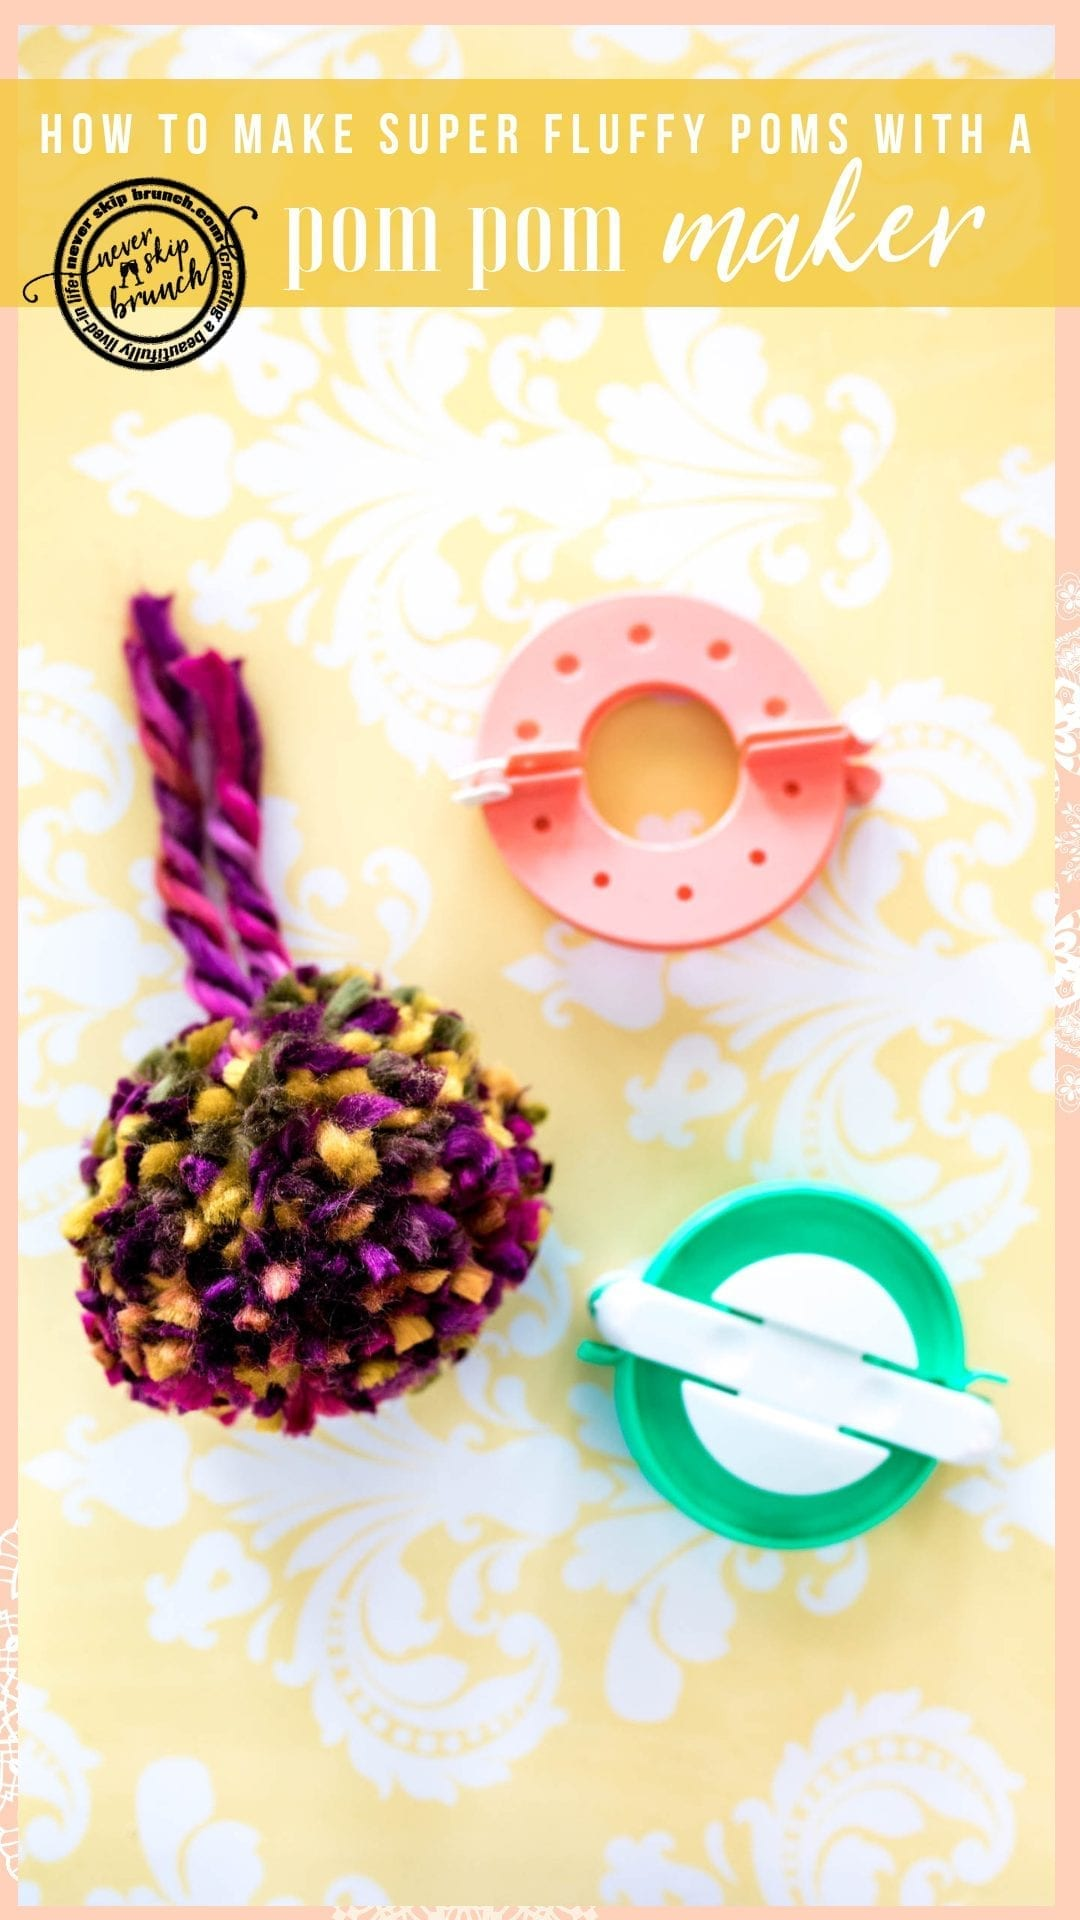 AMAZING TUTORIAL! How to Make pom poms | diy pom poms with a fork | DIY Pom Poms with hand | Make pom pom with a pom pom maker | the secret to fluffy pom poms | how to make a perfect pom pom | pom pom DIY | pom pom tutorial » Never Skip Brunch by Cara Newhart #DIY #crafts #decor